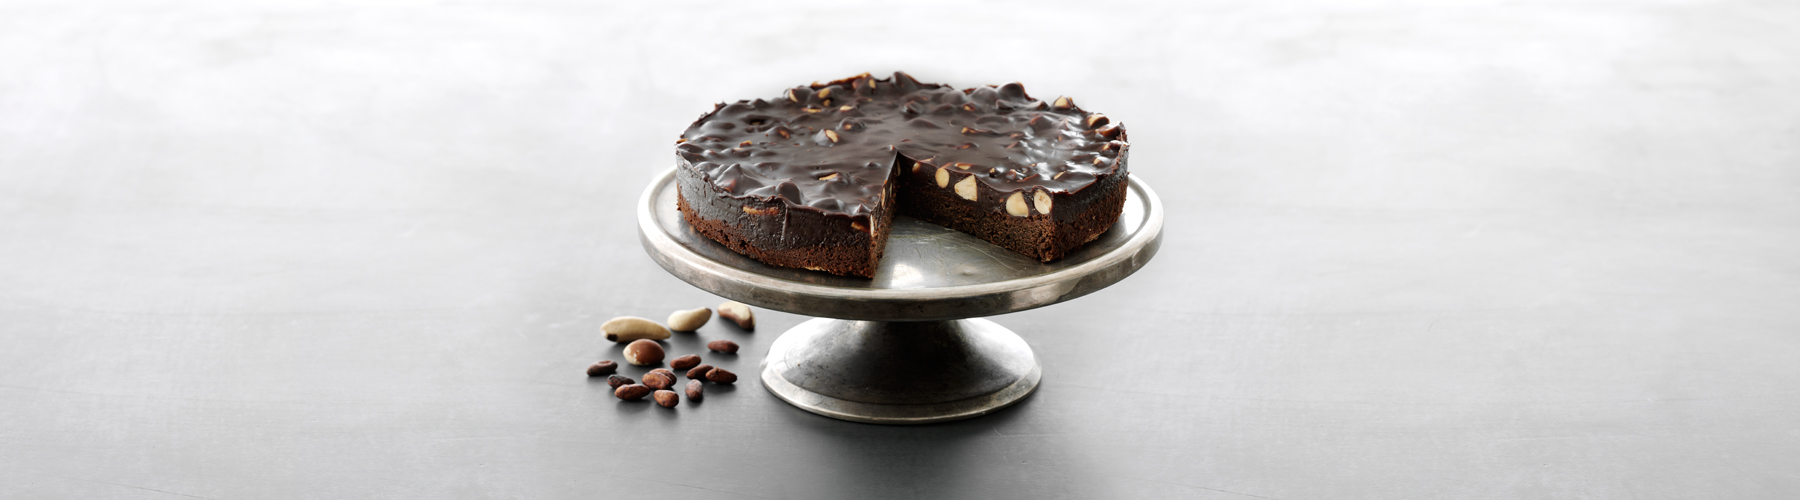 Cake baked with Oialla chocolate